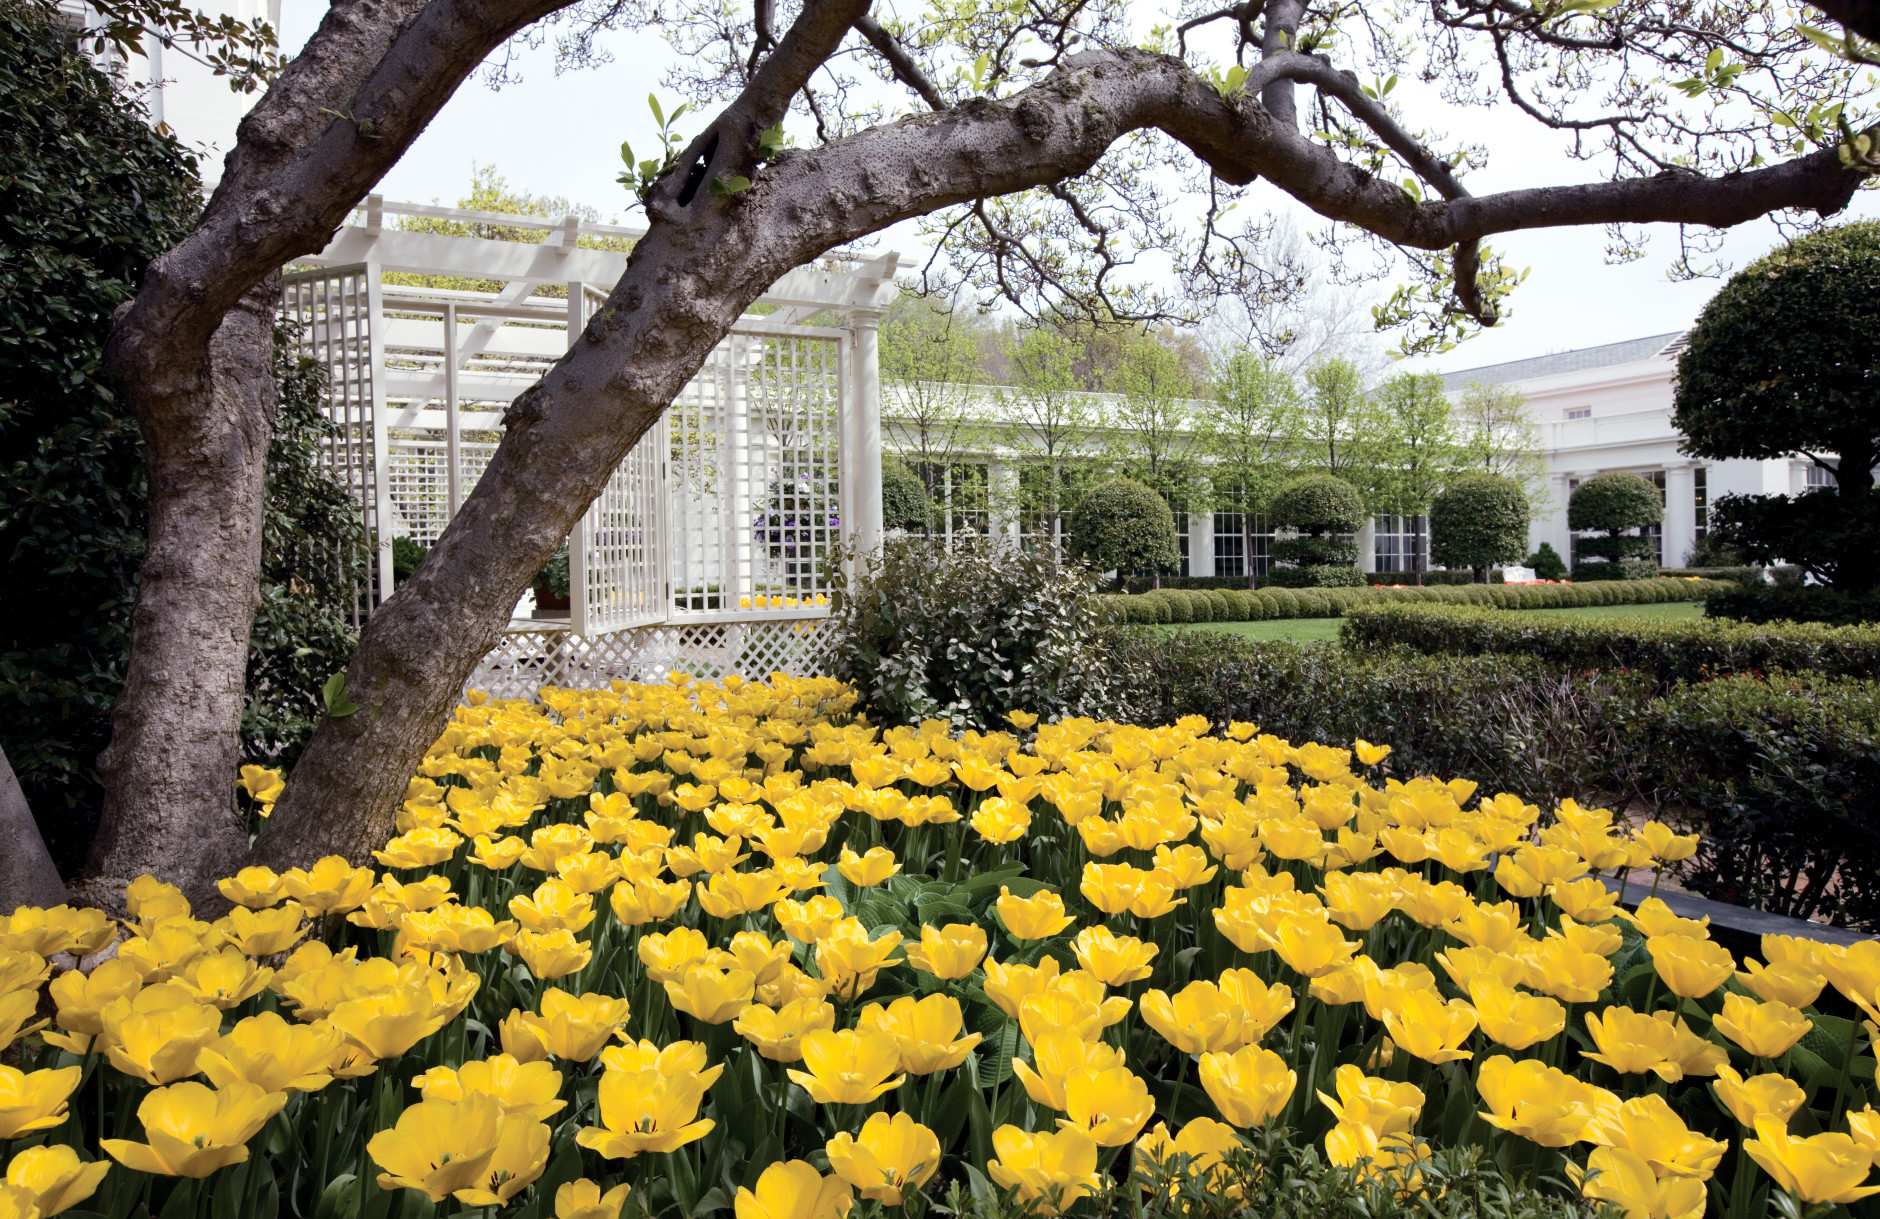 The view toward the Jacqueline Kennedy Garden is one of the stops for visitors touring the White House gardens and grounds in Washington, Sunday, April 19, 2009. (AP Photo/J. Scott Applewhite)